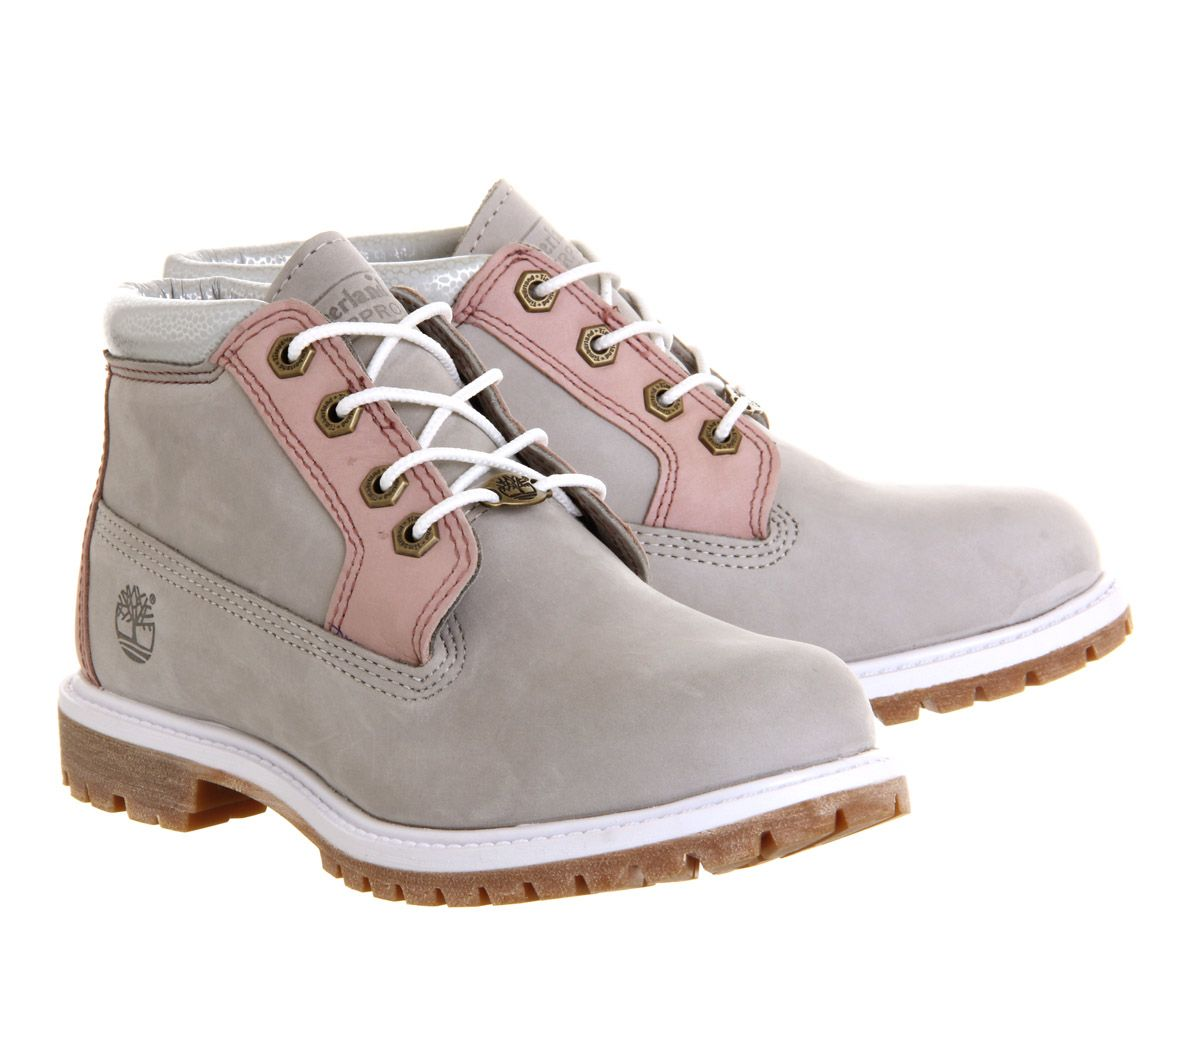 Timberland Nellie Chukka Double Waterproof Boots Wind Chime Nubuck Exclusive Ankle Boots Boots Timberland Premium Boots Timberland Nellie Chukka